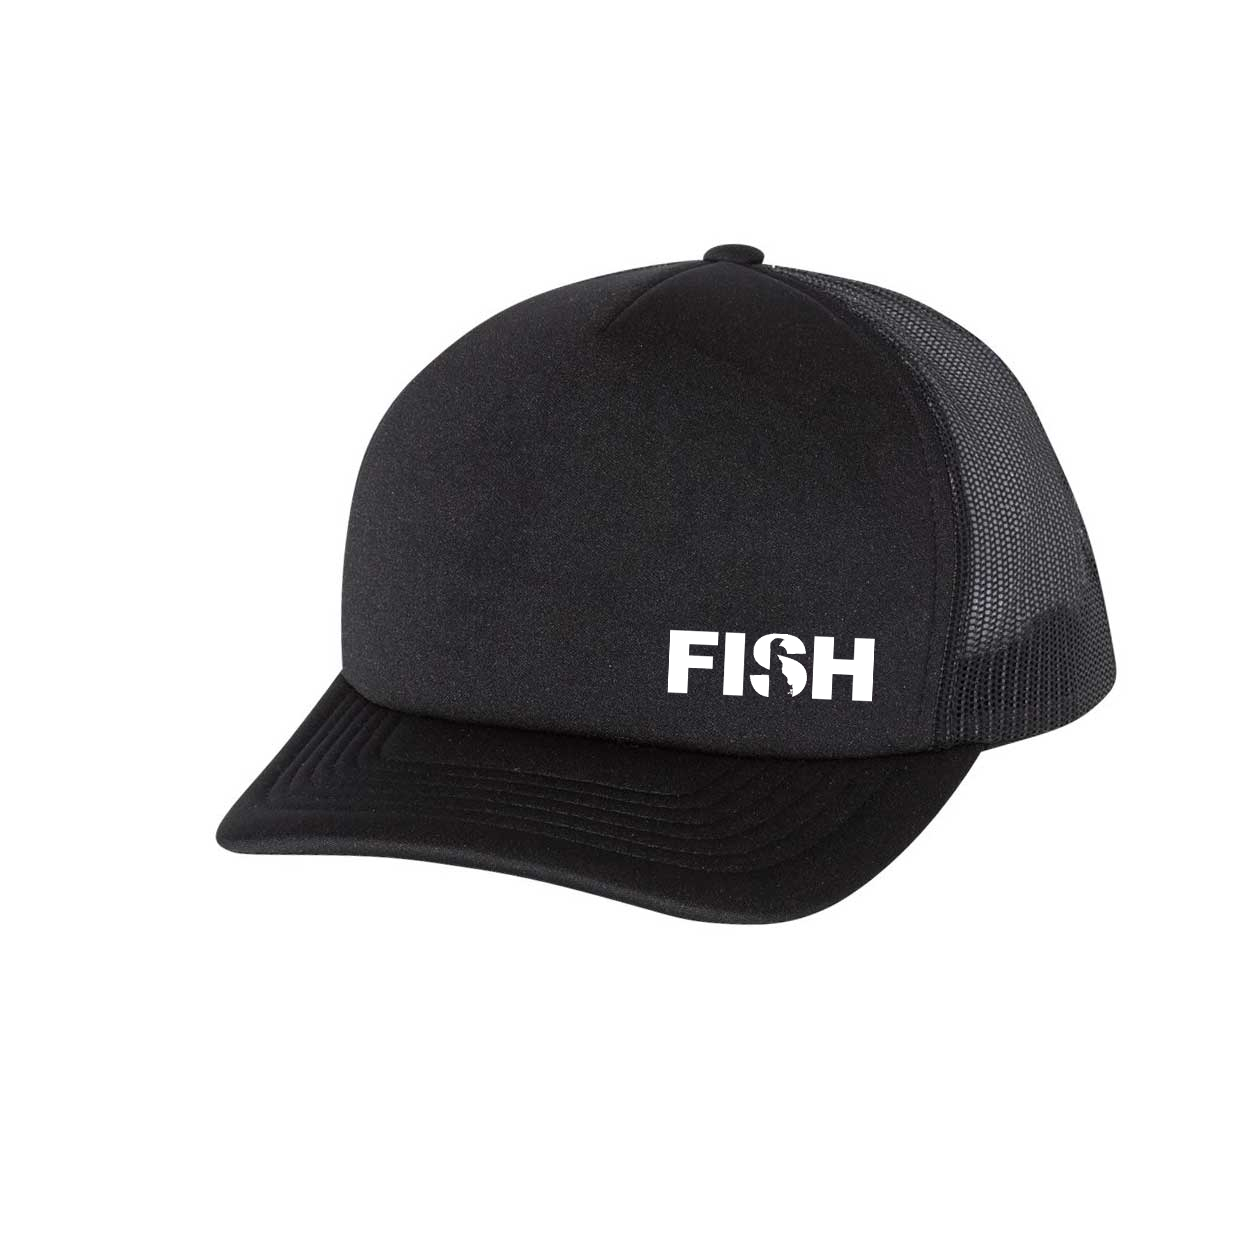 Fish Delaware Night Out Premium Foam Trucker Snapback Hat Black (White Logo)